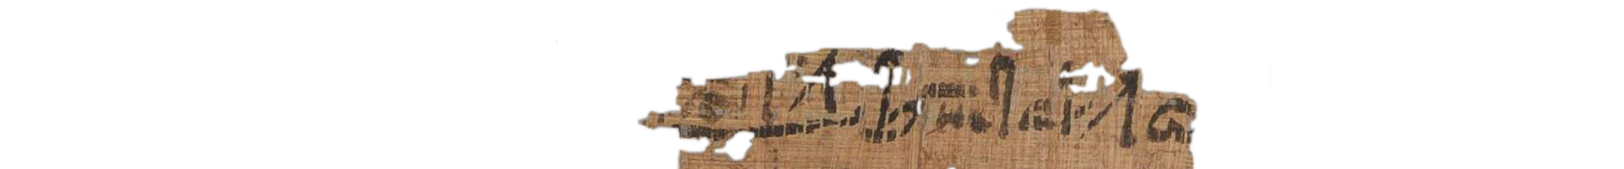 the Turin king list 3.1 (photo of the hieratic text)